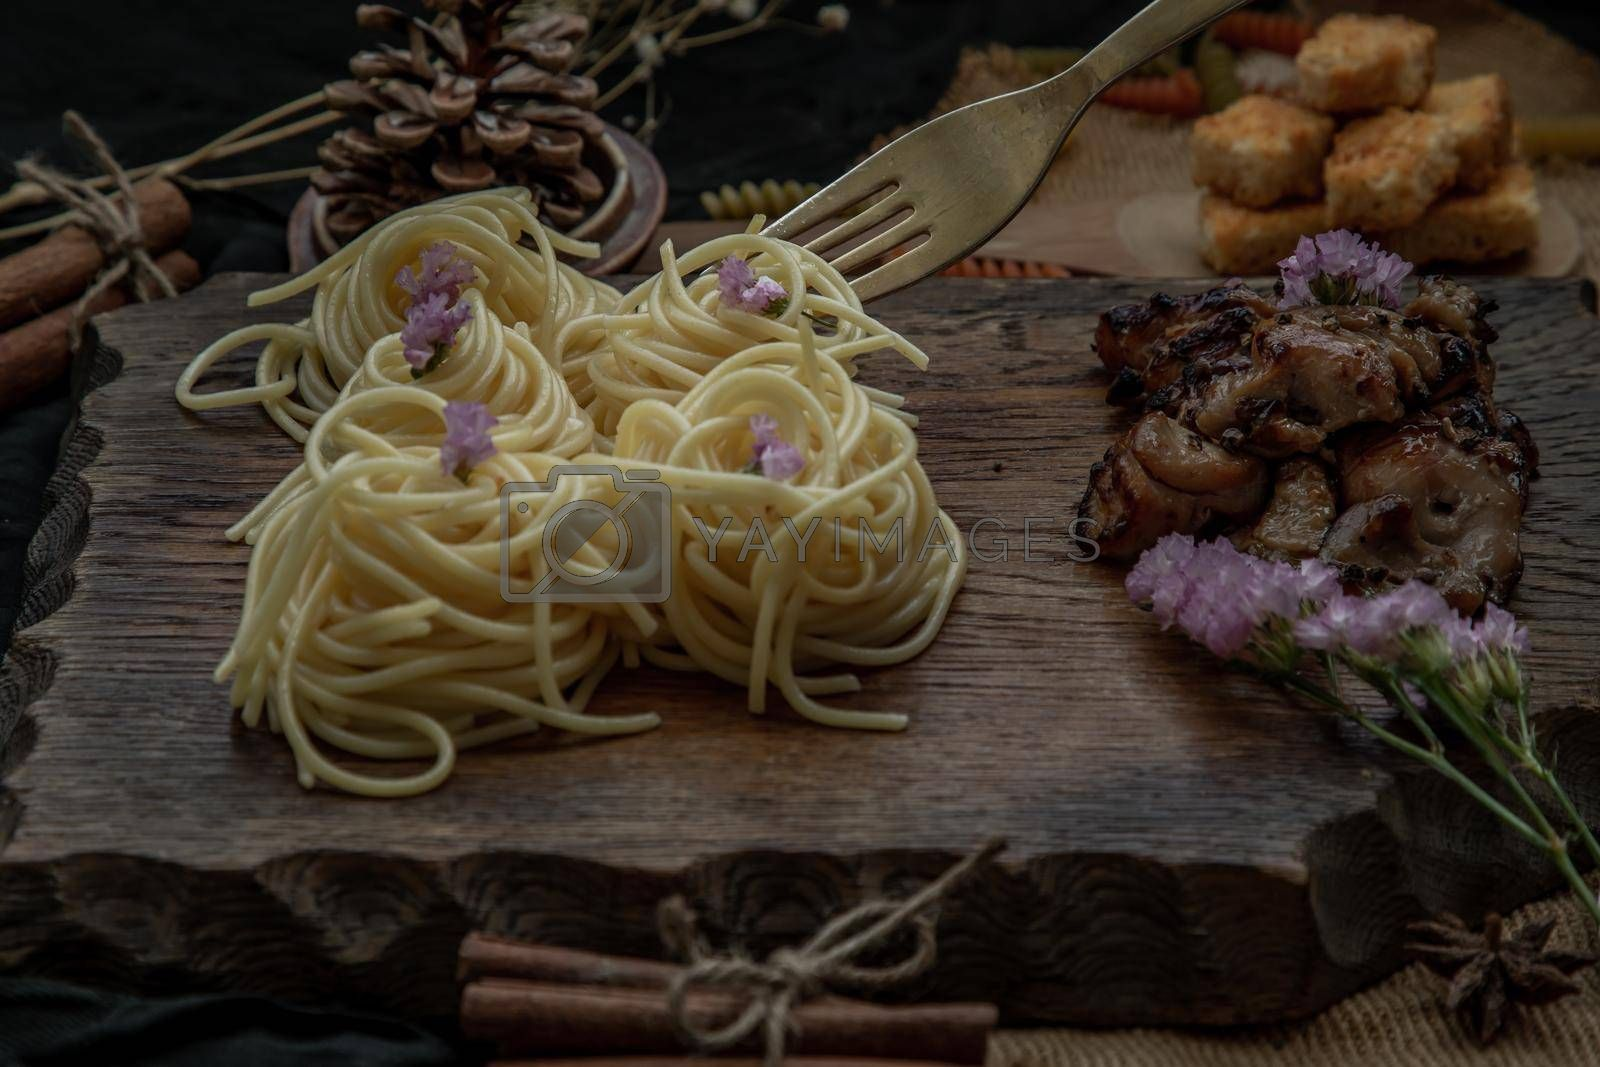 Royalty free image of Spaghetti with Roasted Chicken with Black Pepper on a wooden plate Served with Crispy butter toast. by tosirikul